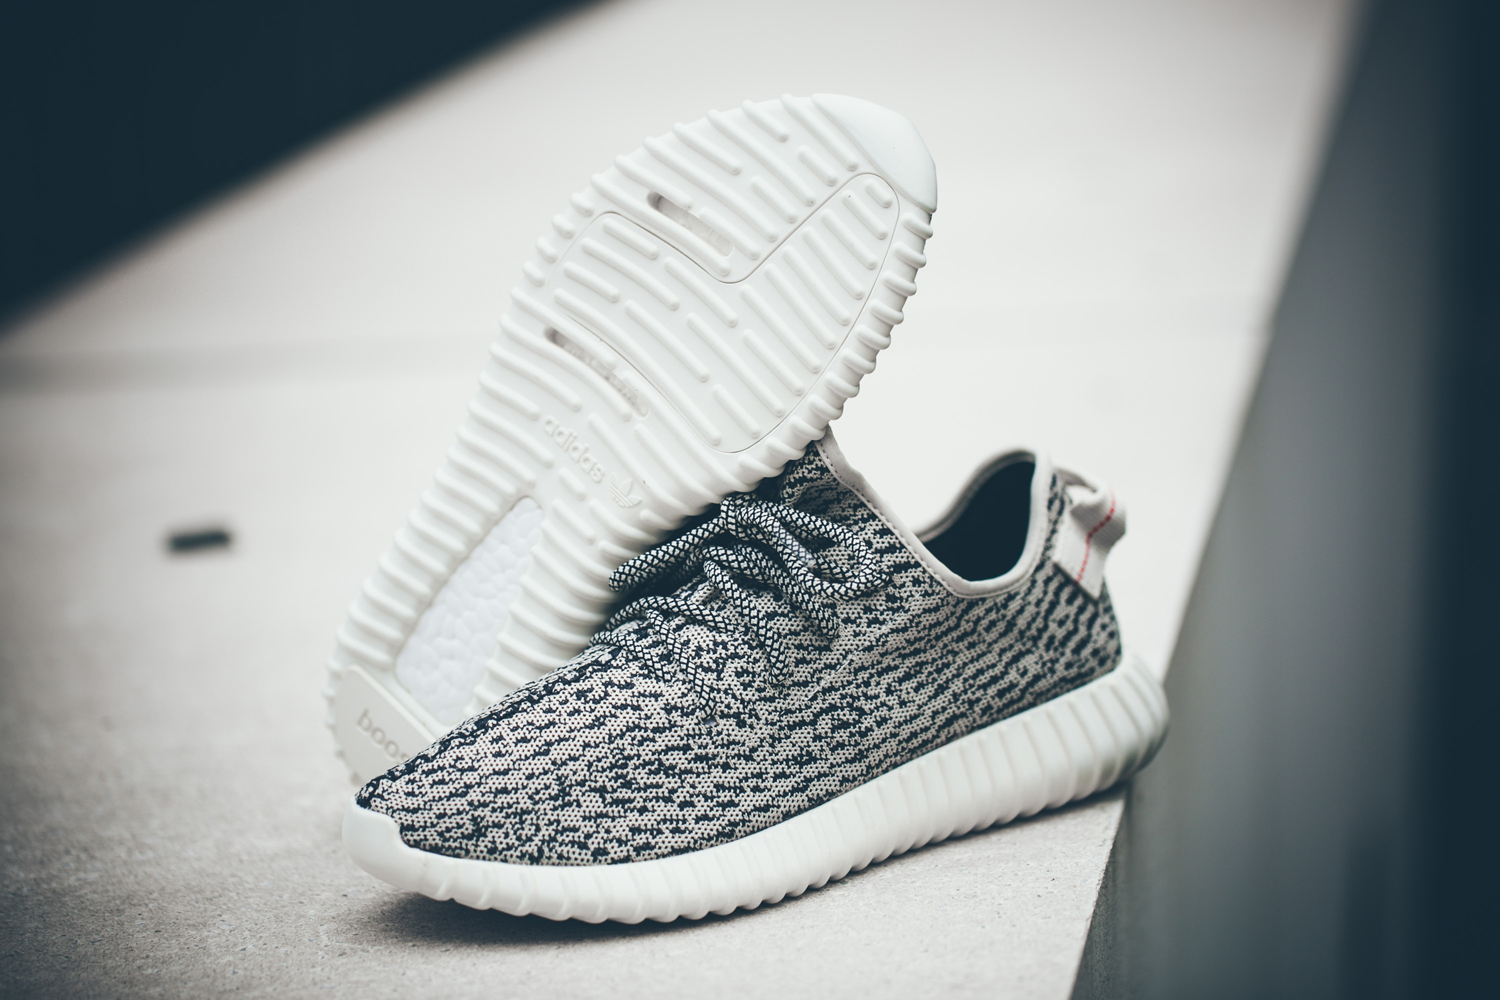 Detailed Images of the adidas Yeezy 350 Boost Low have Surfaced